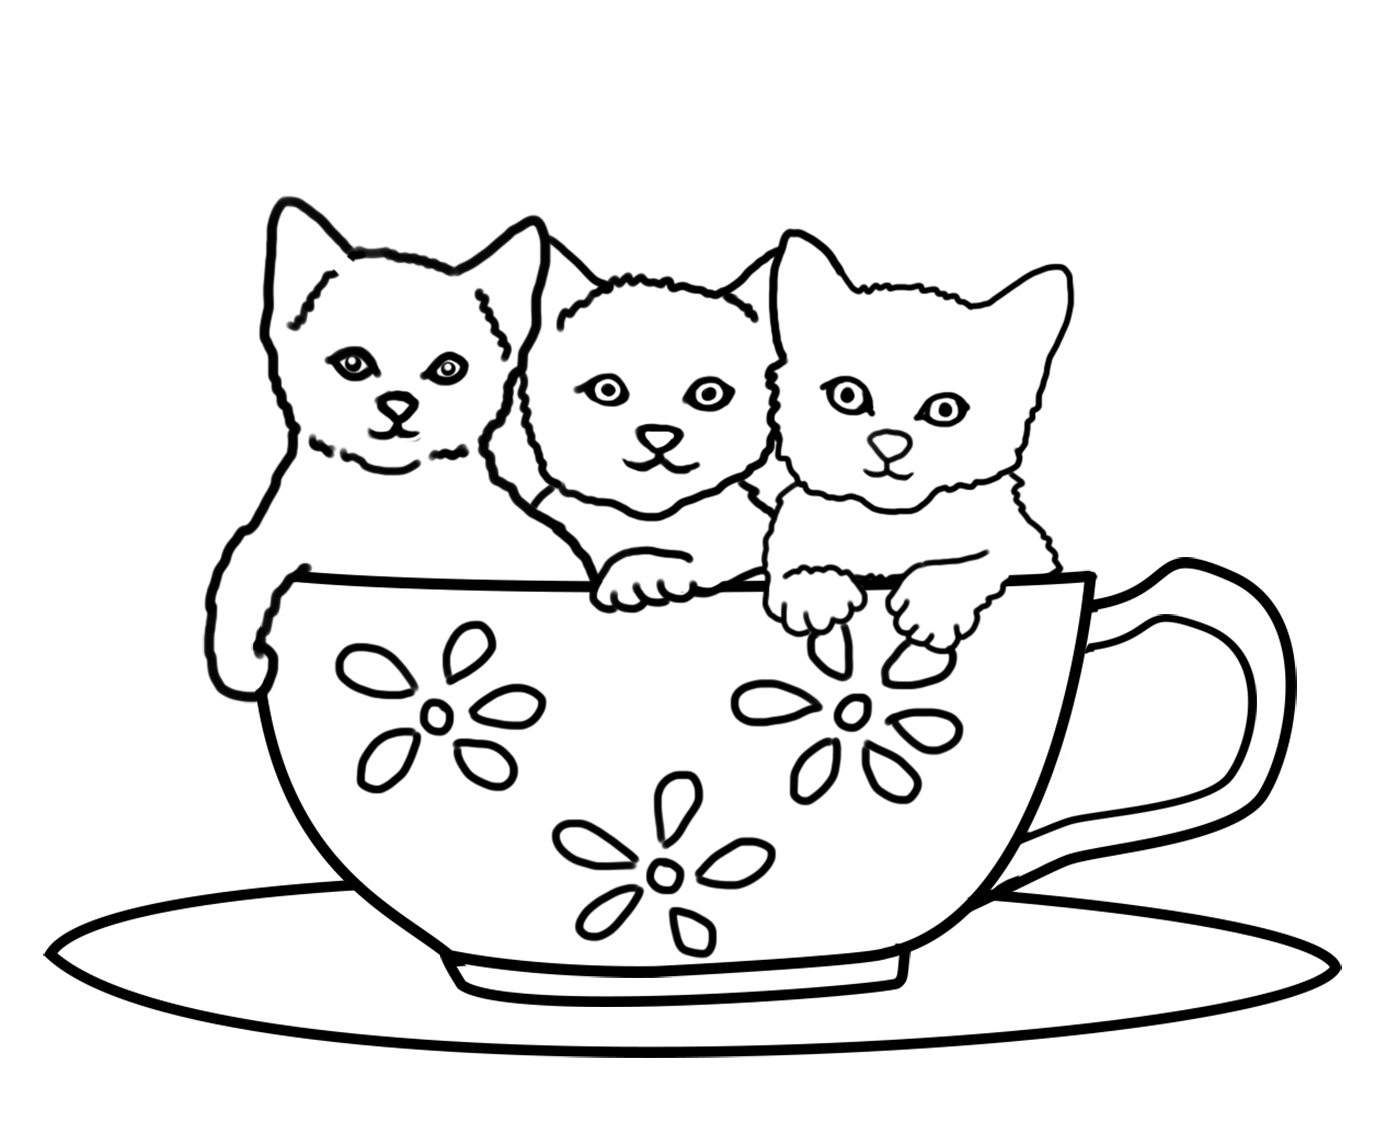 cats pictures to color 30 free printable kitten coloring pages kitty coloring cats to pictures color 1 1